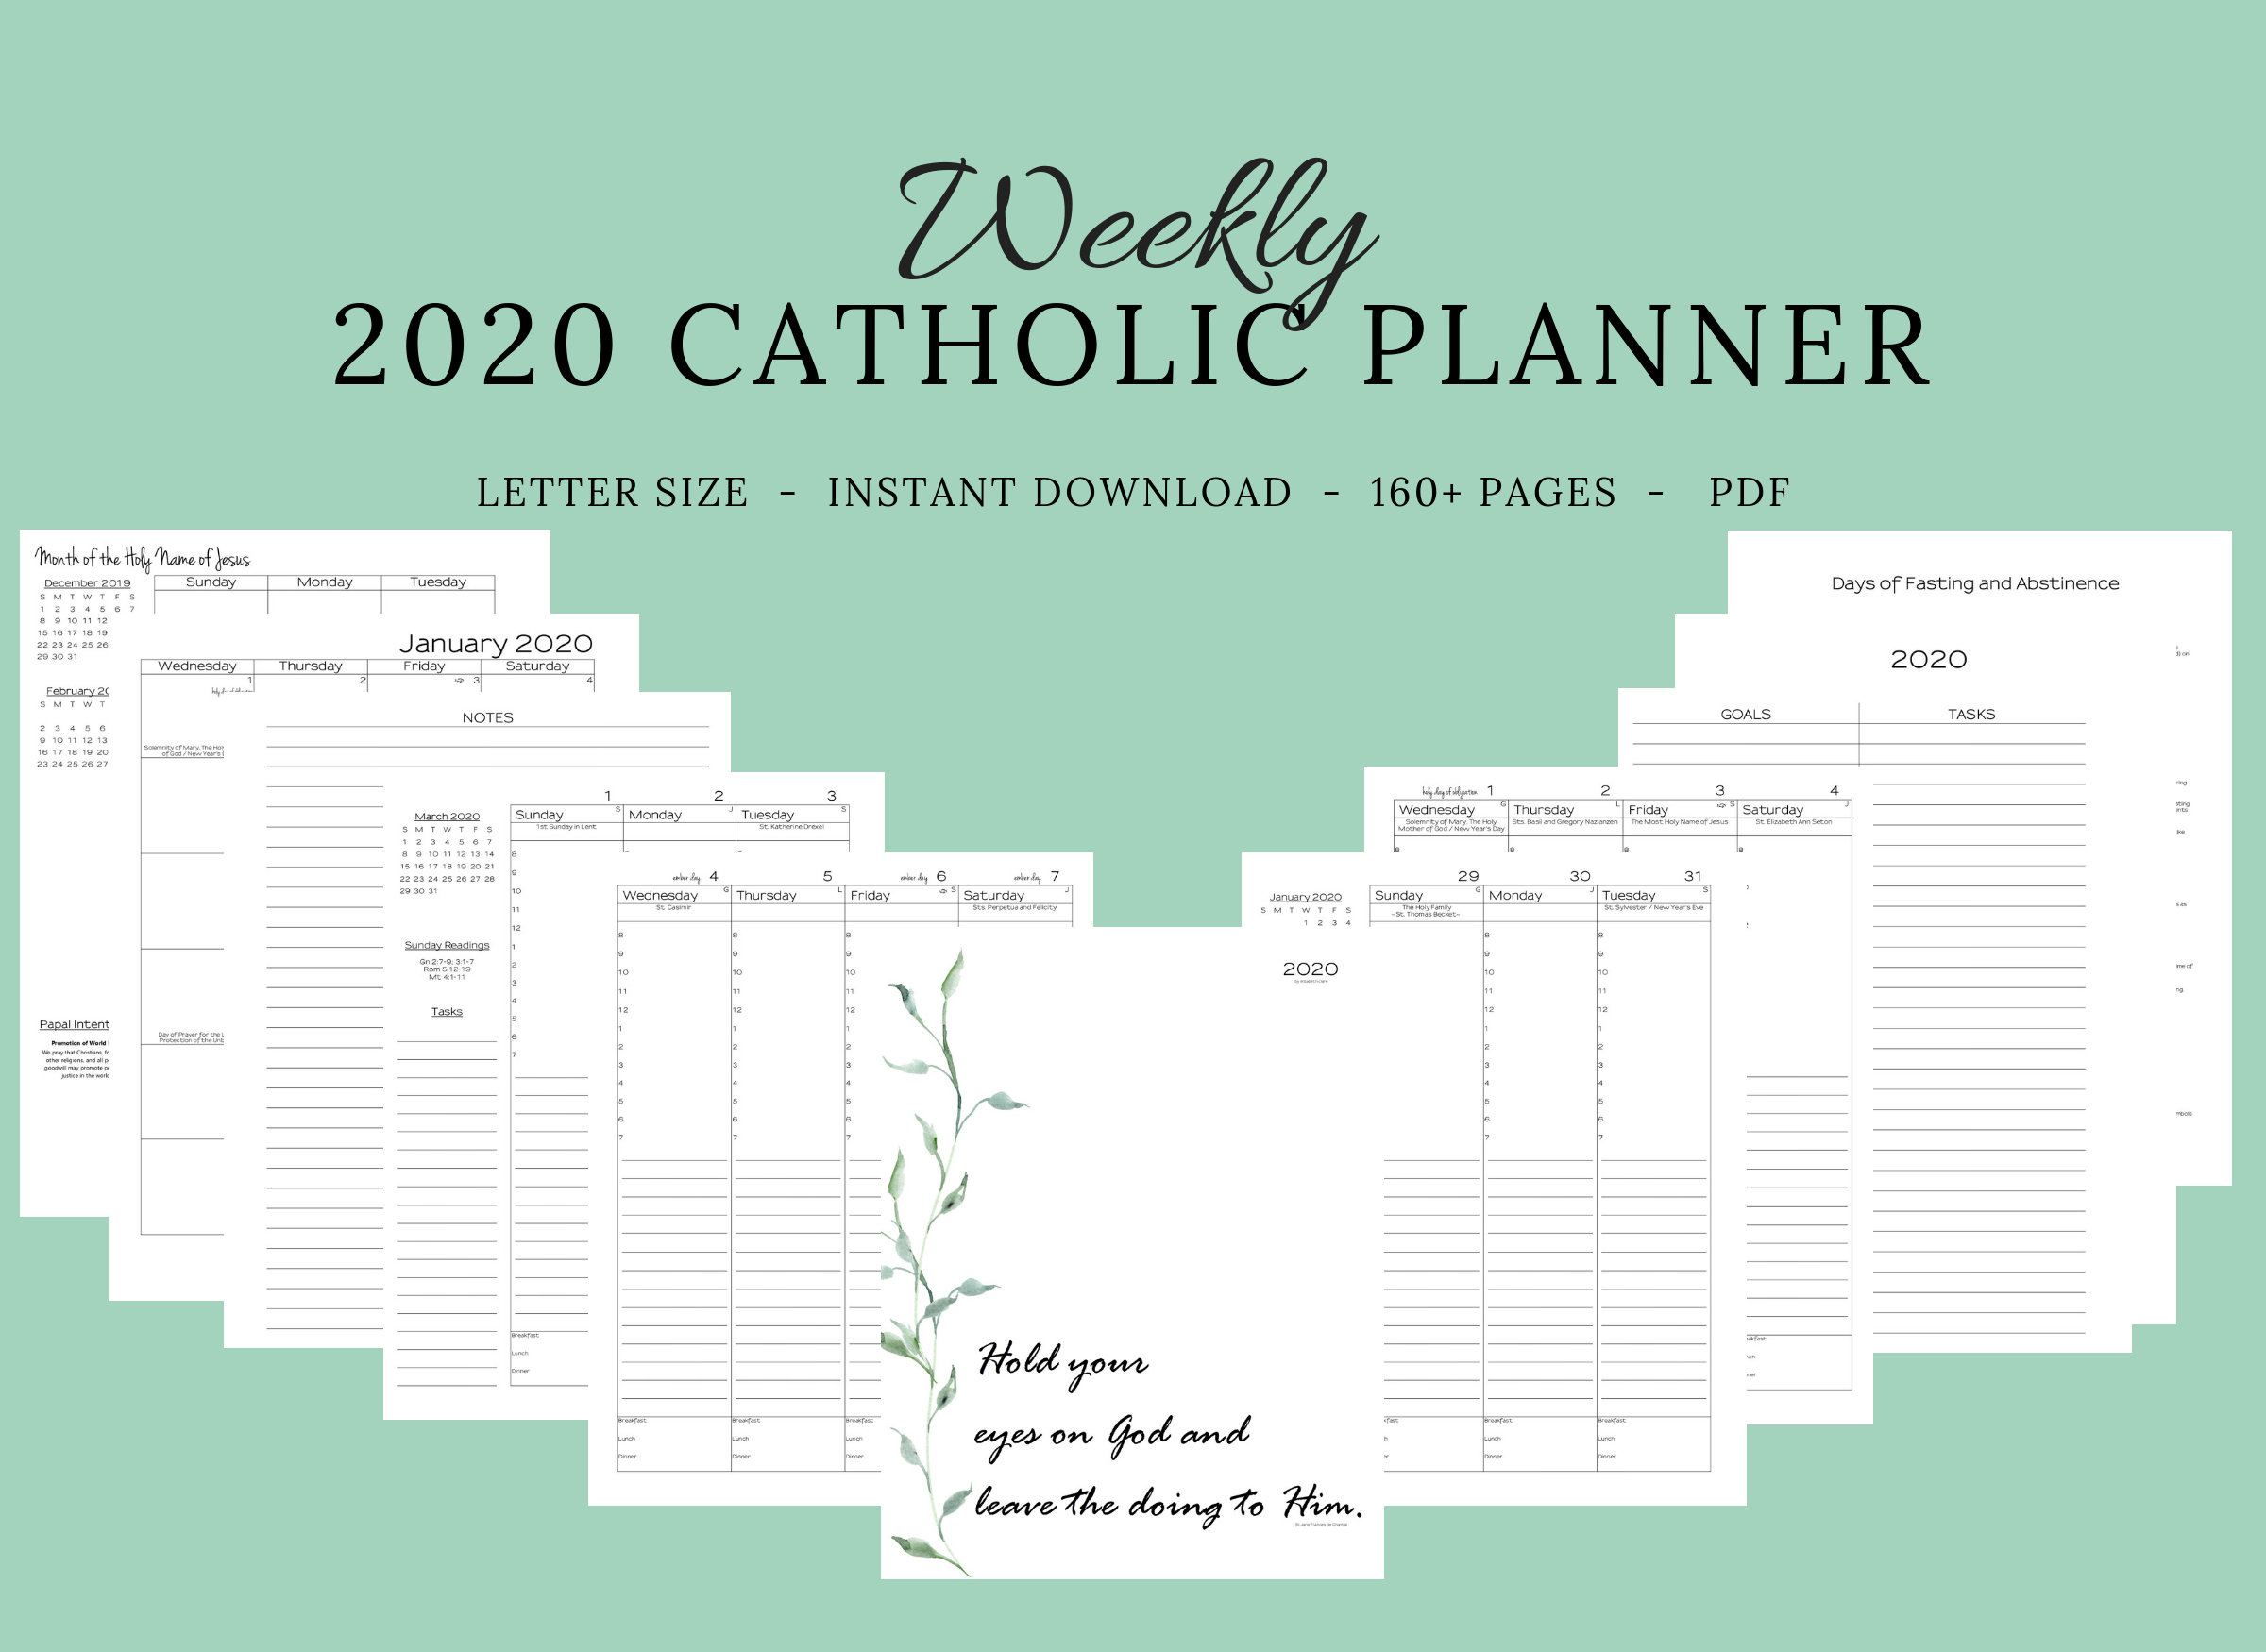 2020 Catholic Planner Weekly Printable: Daily Planner / Weekly Calendar /  Catholic Liturgical Year Calendar / Printable Catholic Planner